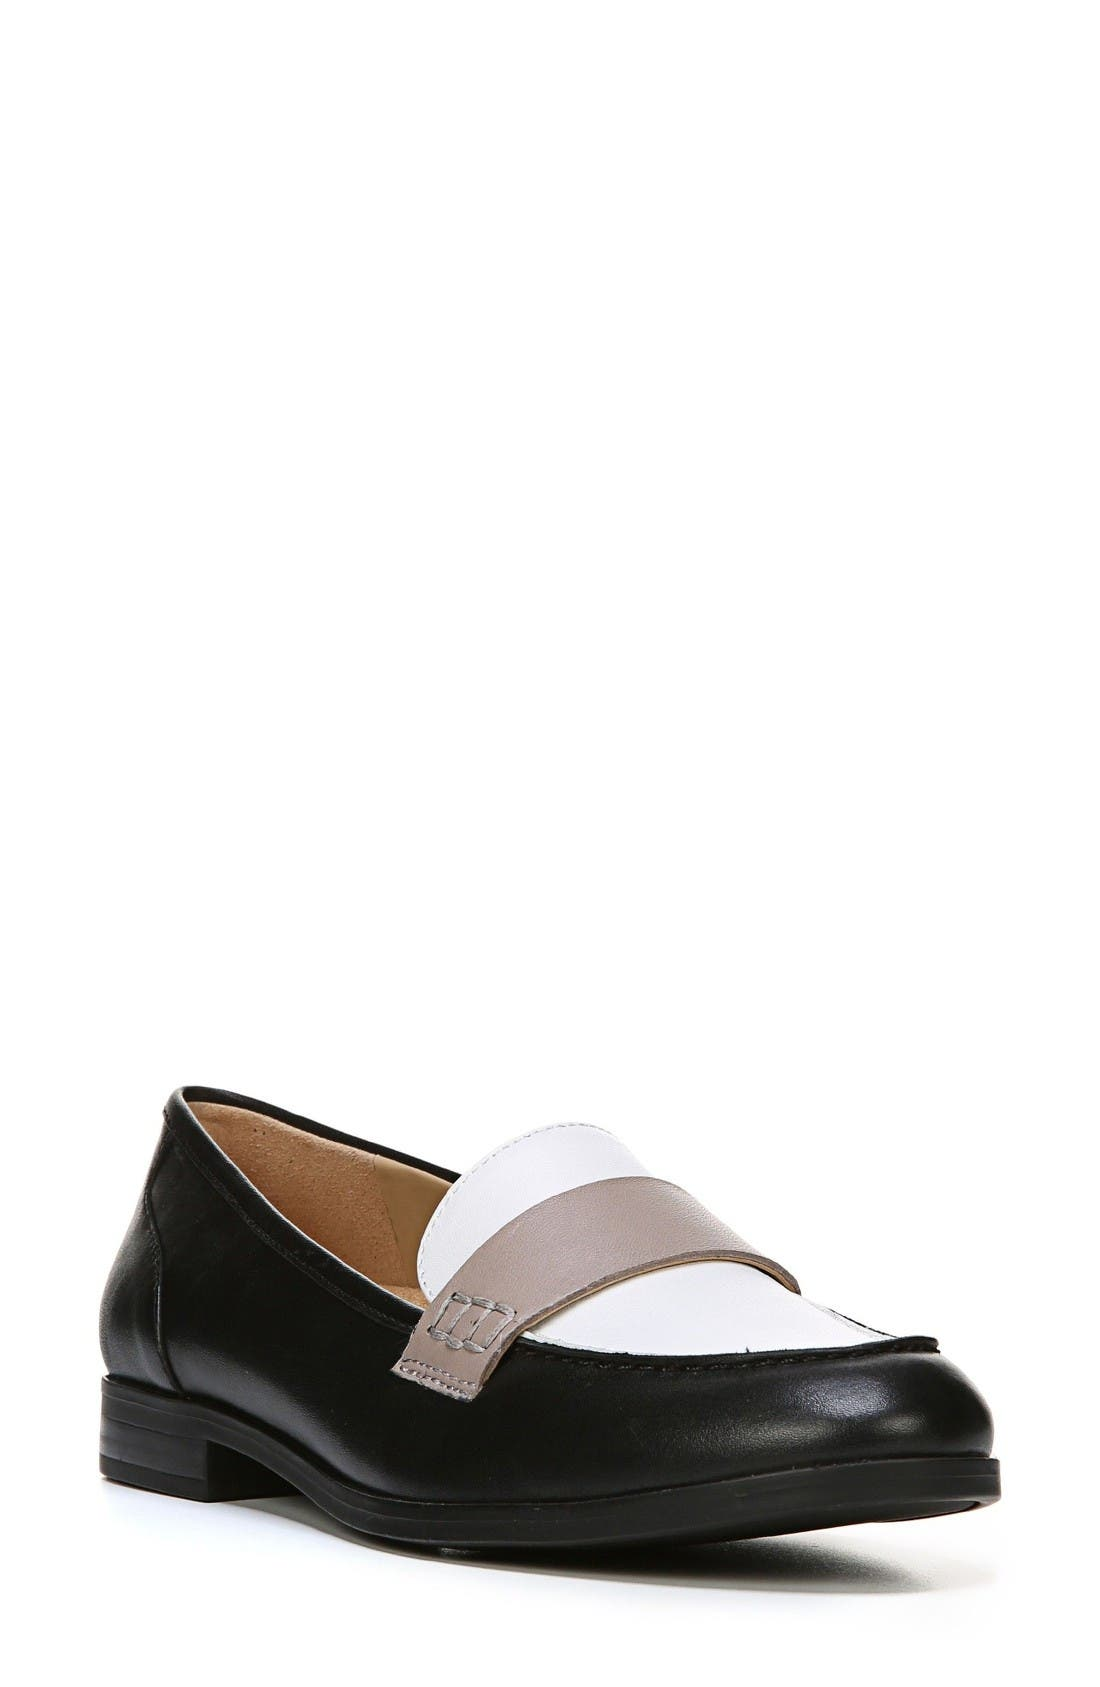 Main Image - Naturalizer Veronica Loafer (Women)